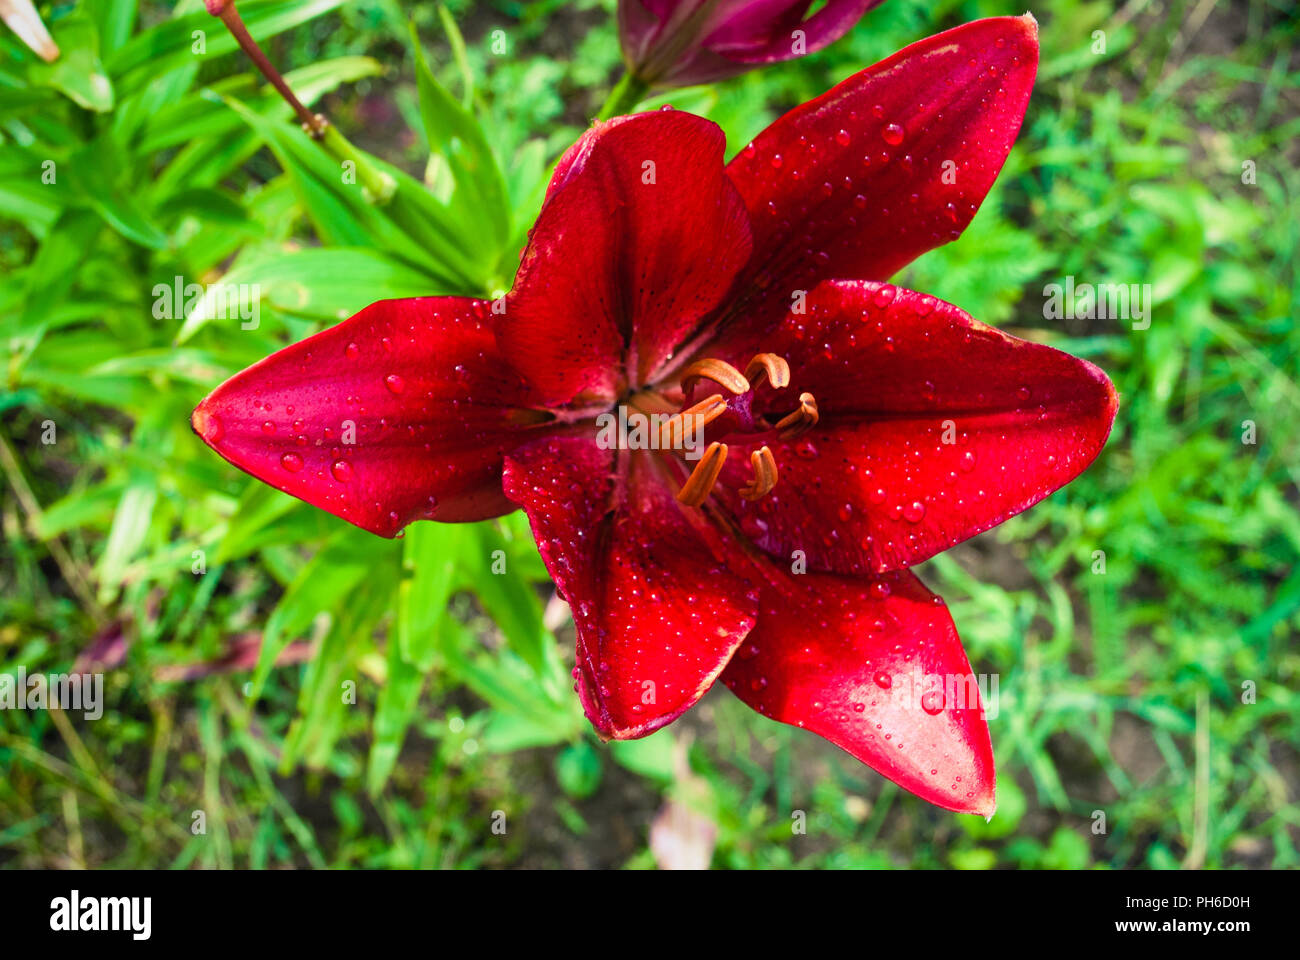 Beautiful flowers of red lilies in the garden rain drops on lily beautiful flowers of red lilies in the garden rain drops on lily flower izmirmasajfo